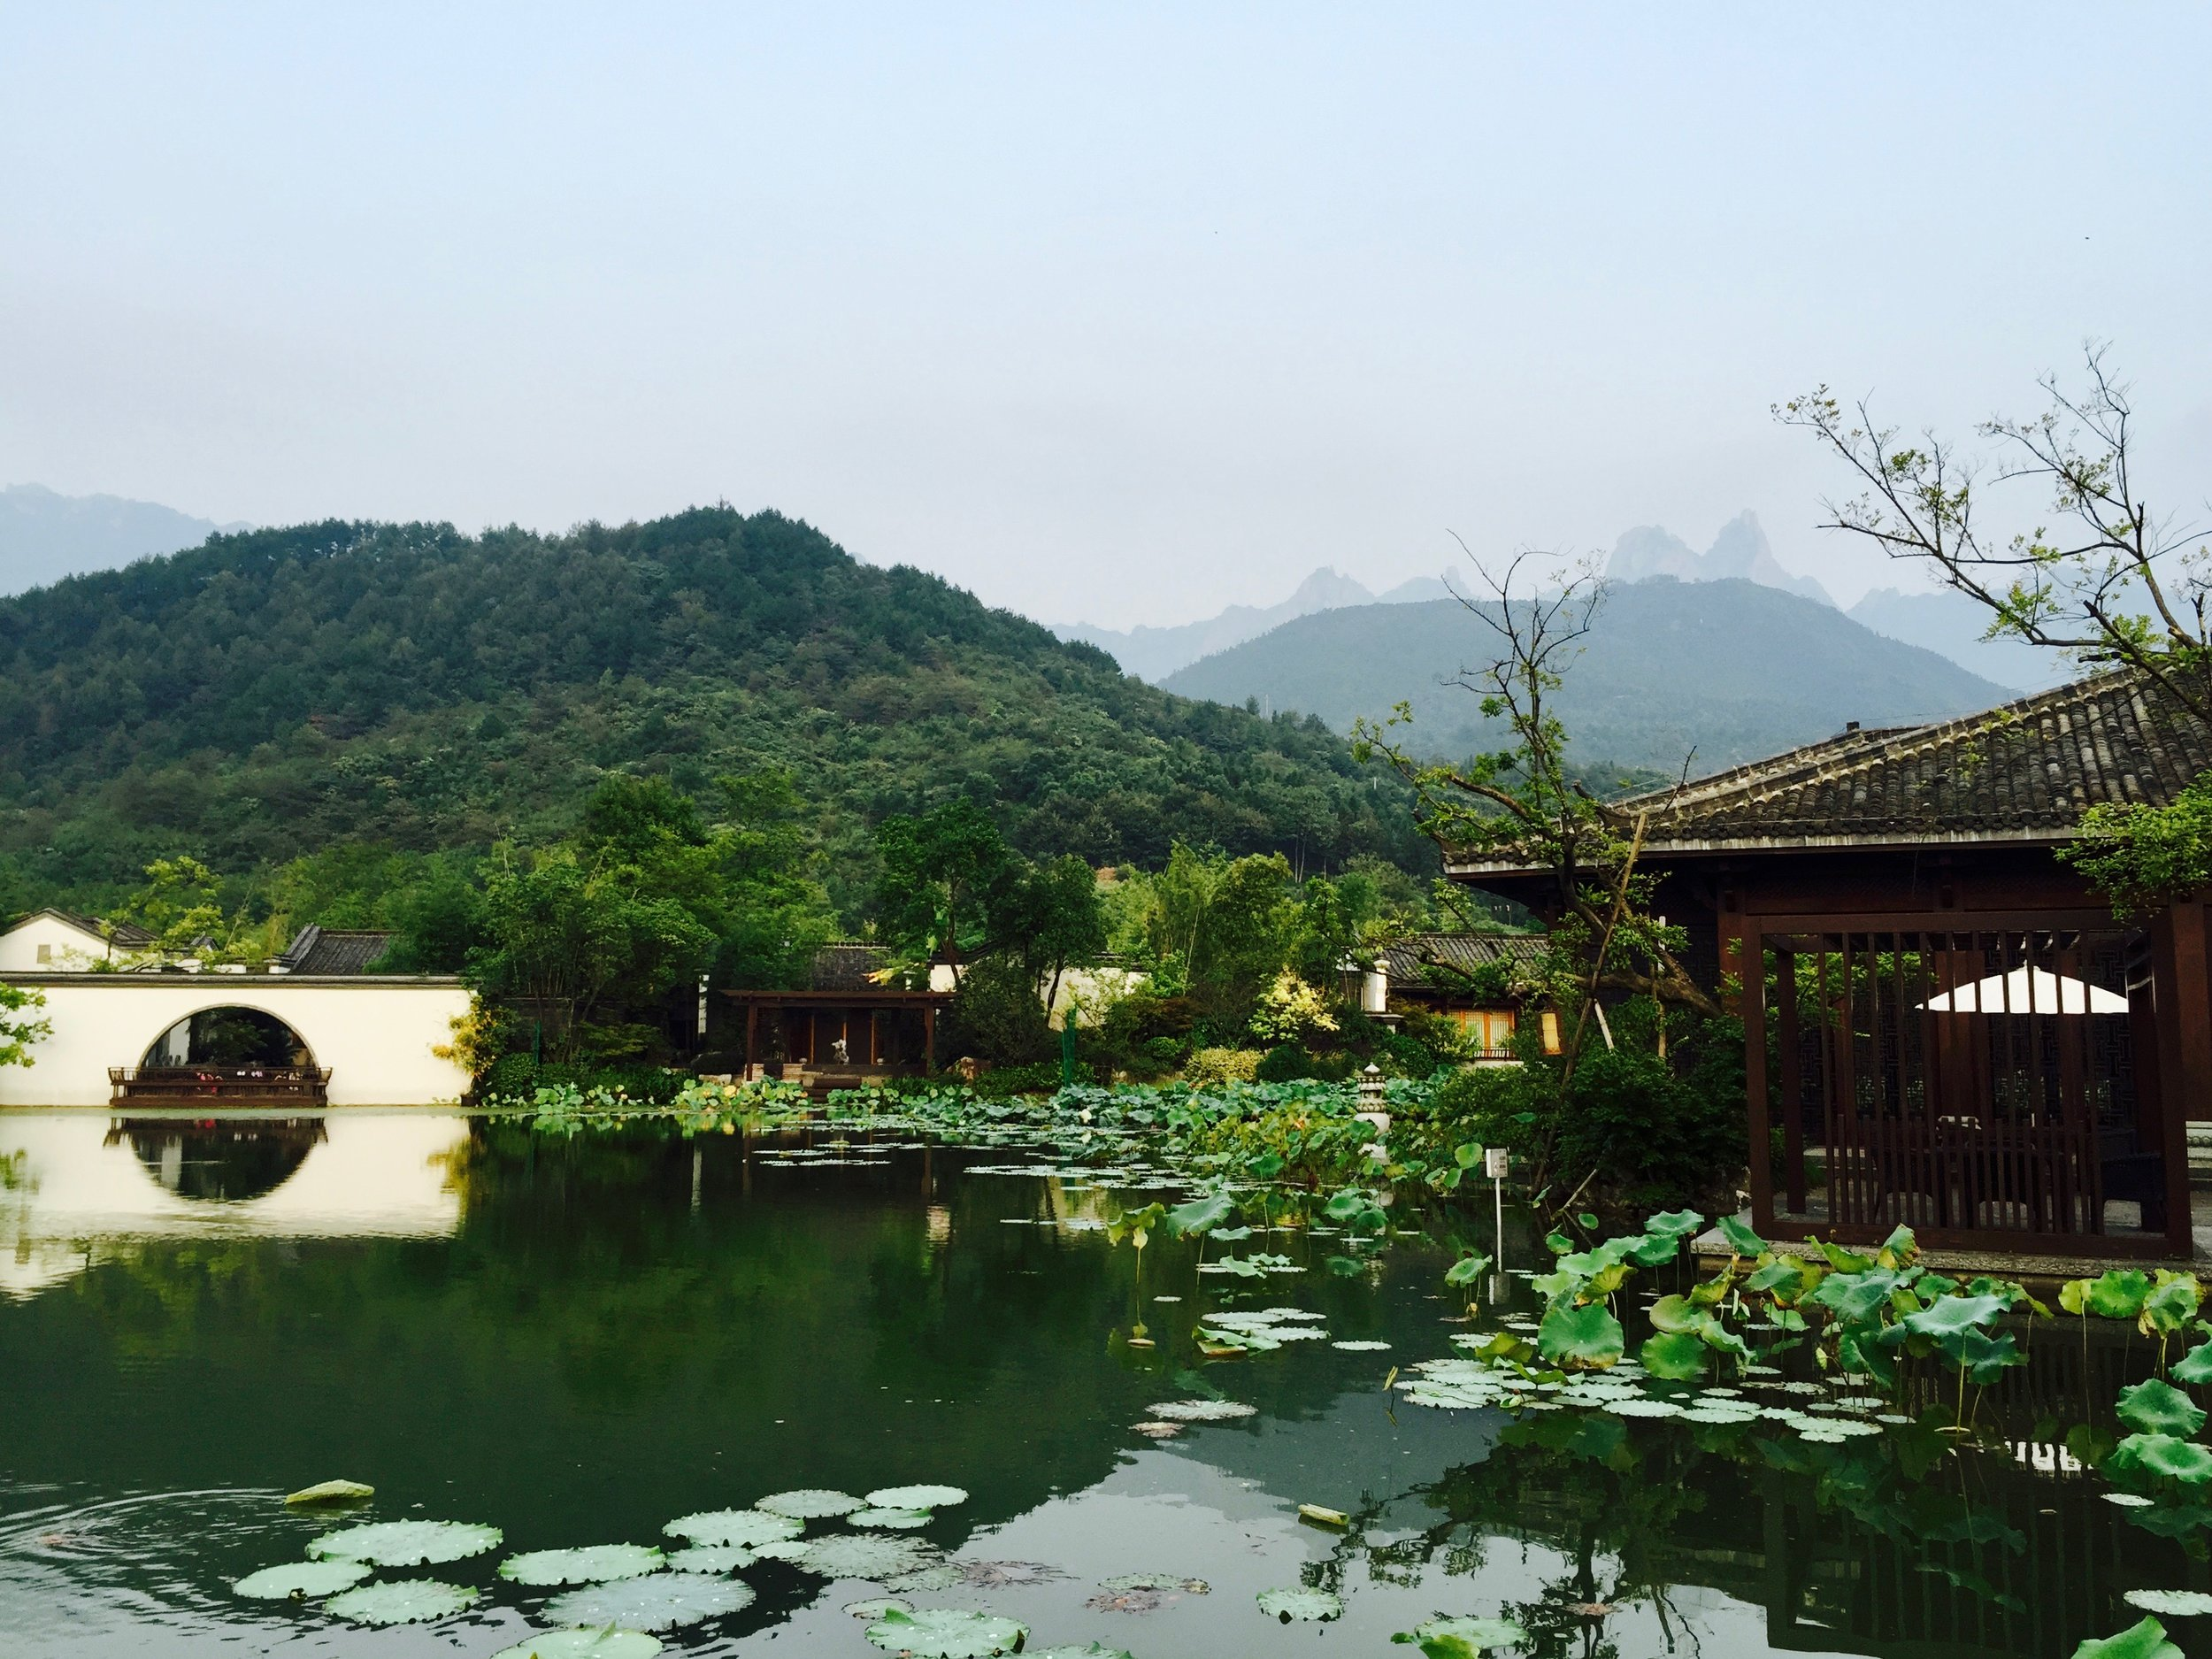 Tranquil traditional garden framed by Jiuhua Shan, one of the four sacred peaks of Chinese Buddhism dedicated to Ksitigarbha (Chinese: Dìzàng 地藏, Japanese: Jizō), bodhisattva who has vowed to liberate all beings from the hell realms (Anhui, China)